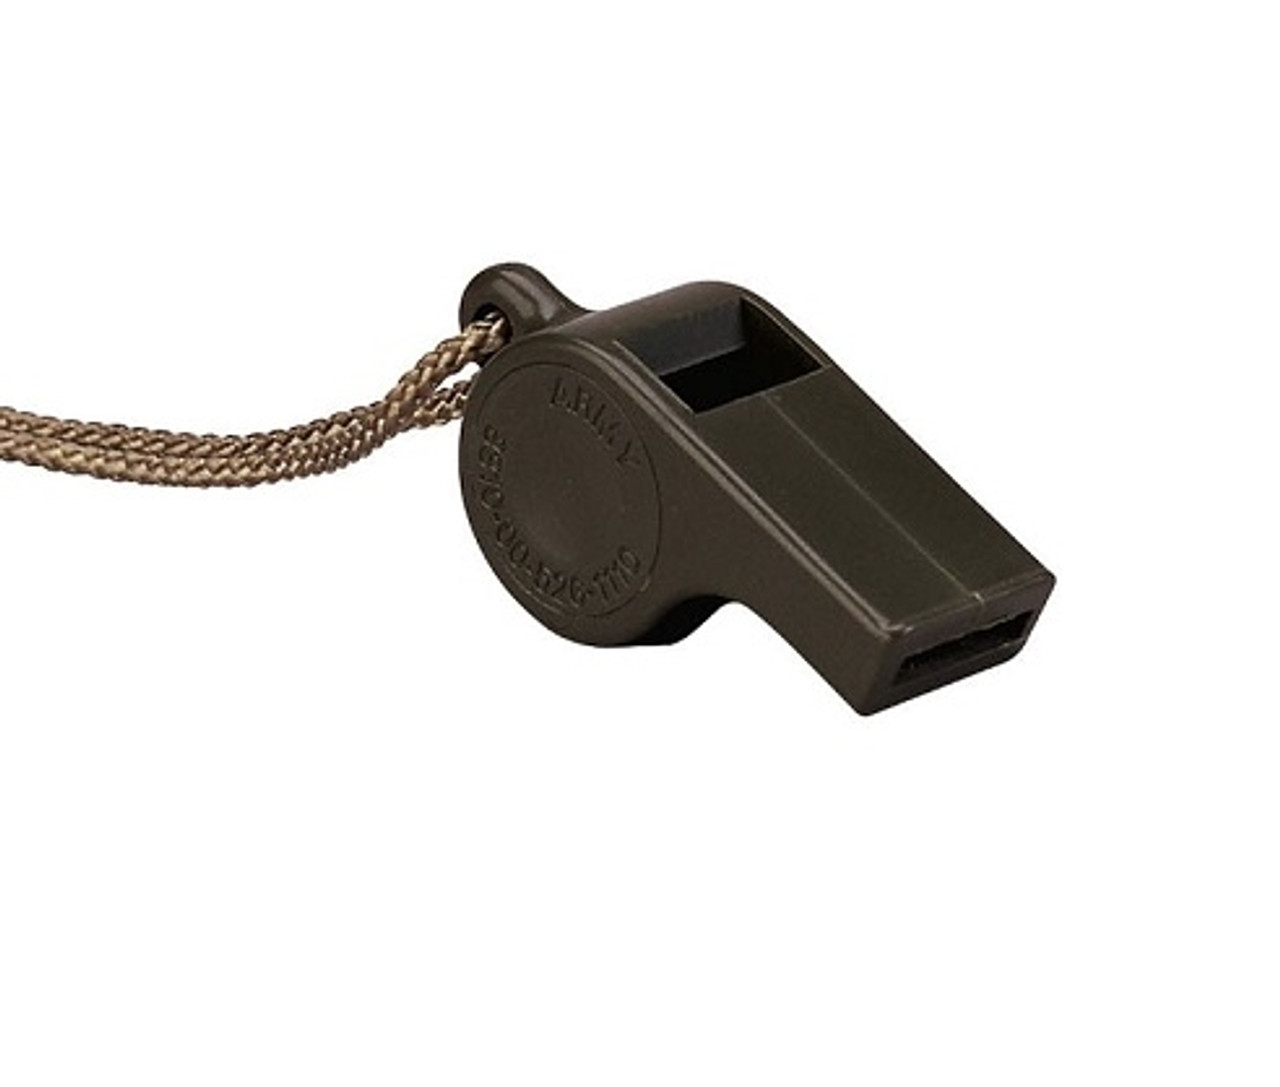 G.I. Style O.D. Police Whistle from Hessen Tactical